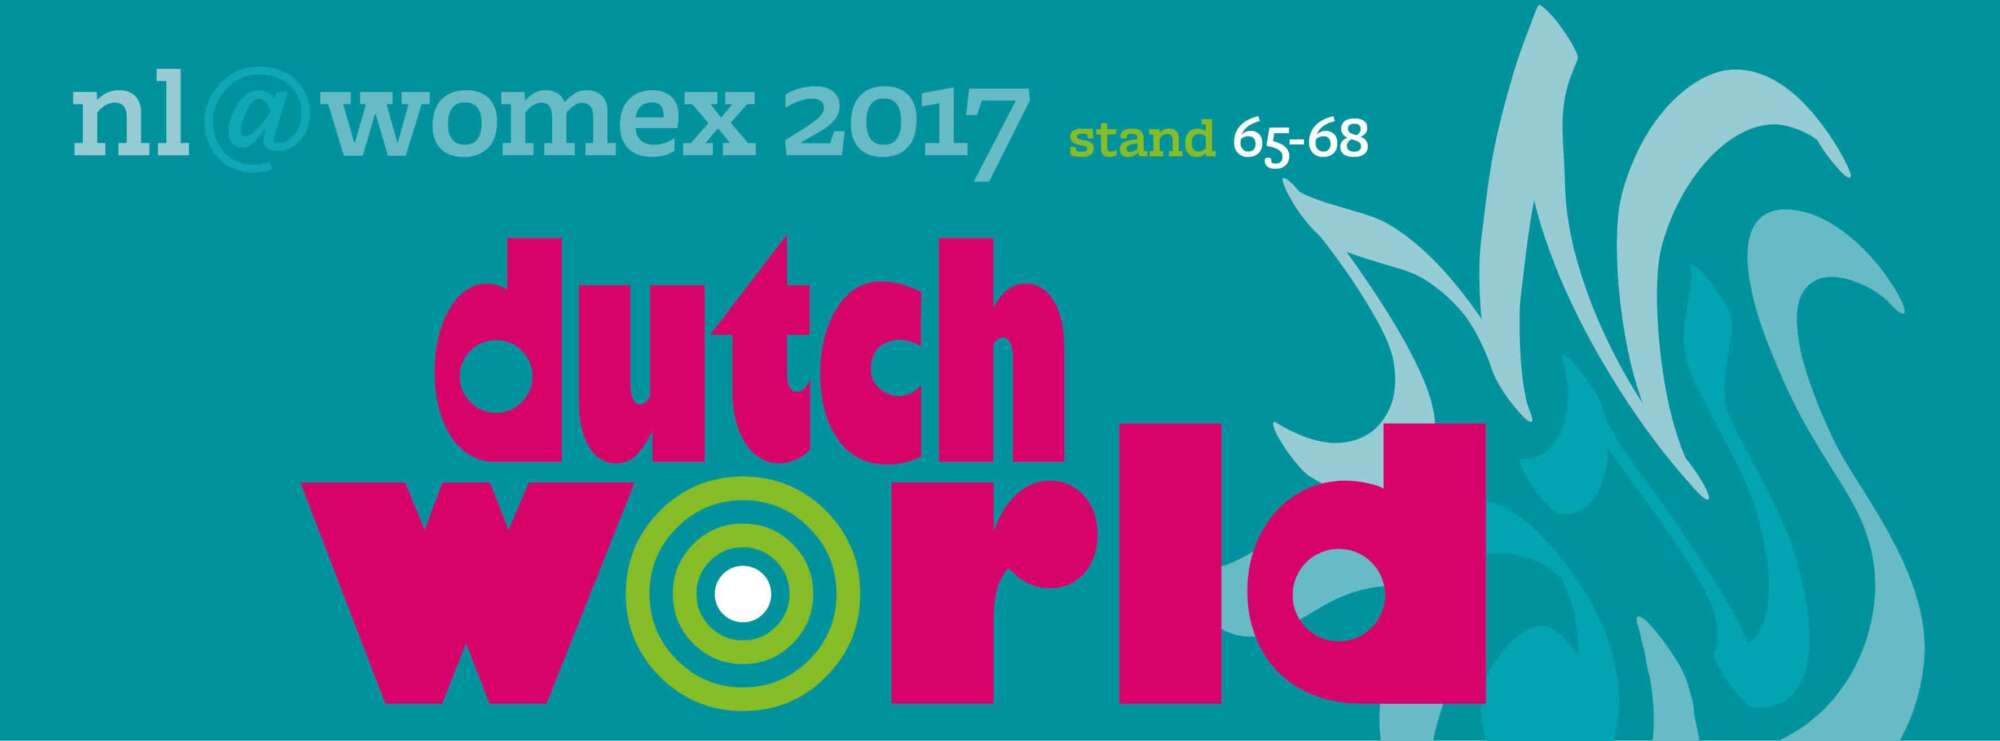 Dutch Umbrella @WOMEX 2017